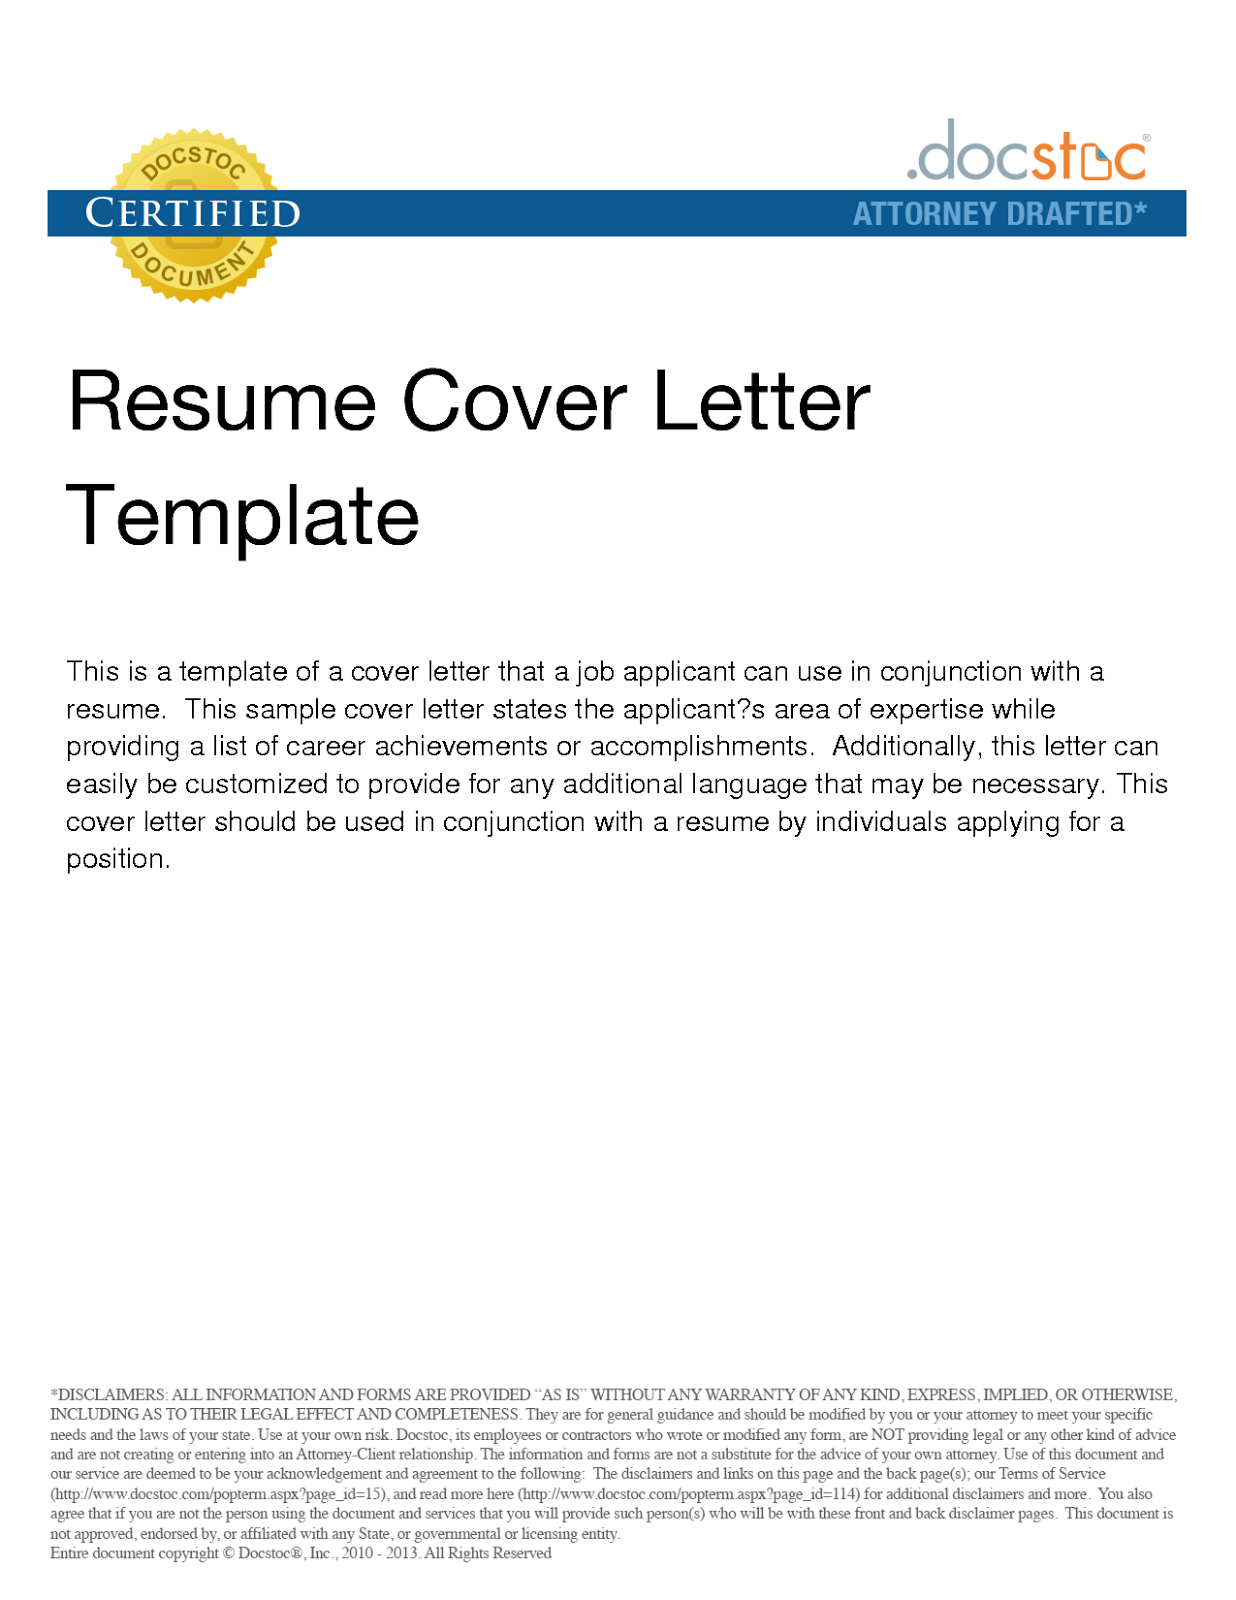 Word Cover Letter Templates  Resume Cover Sheet Template